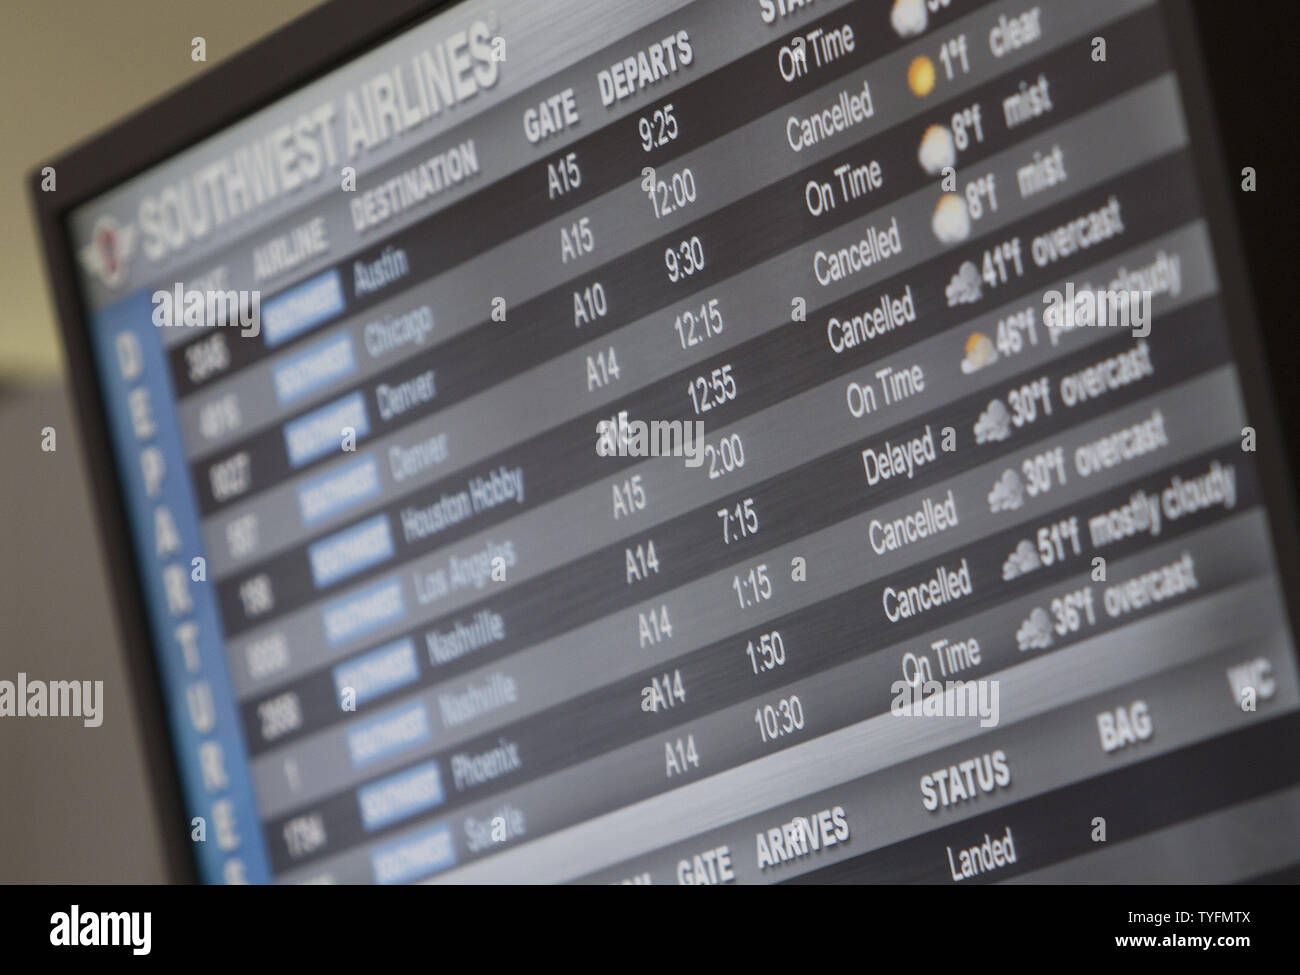 A departure board shows cancelled flights at Newark airport as a snowstorm began in Newark, New Jersey on February 3, 2014.  6-8 of inches of snow expected to fall in the tri-state area causes travel delays and cancellations.    UPI/Gary C. Caskey - Stock Image